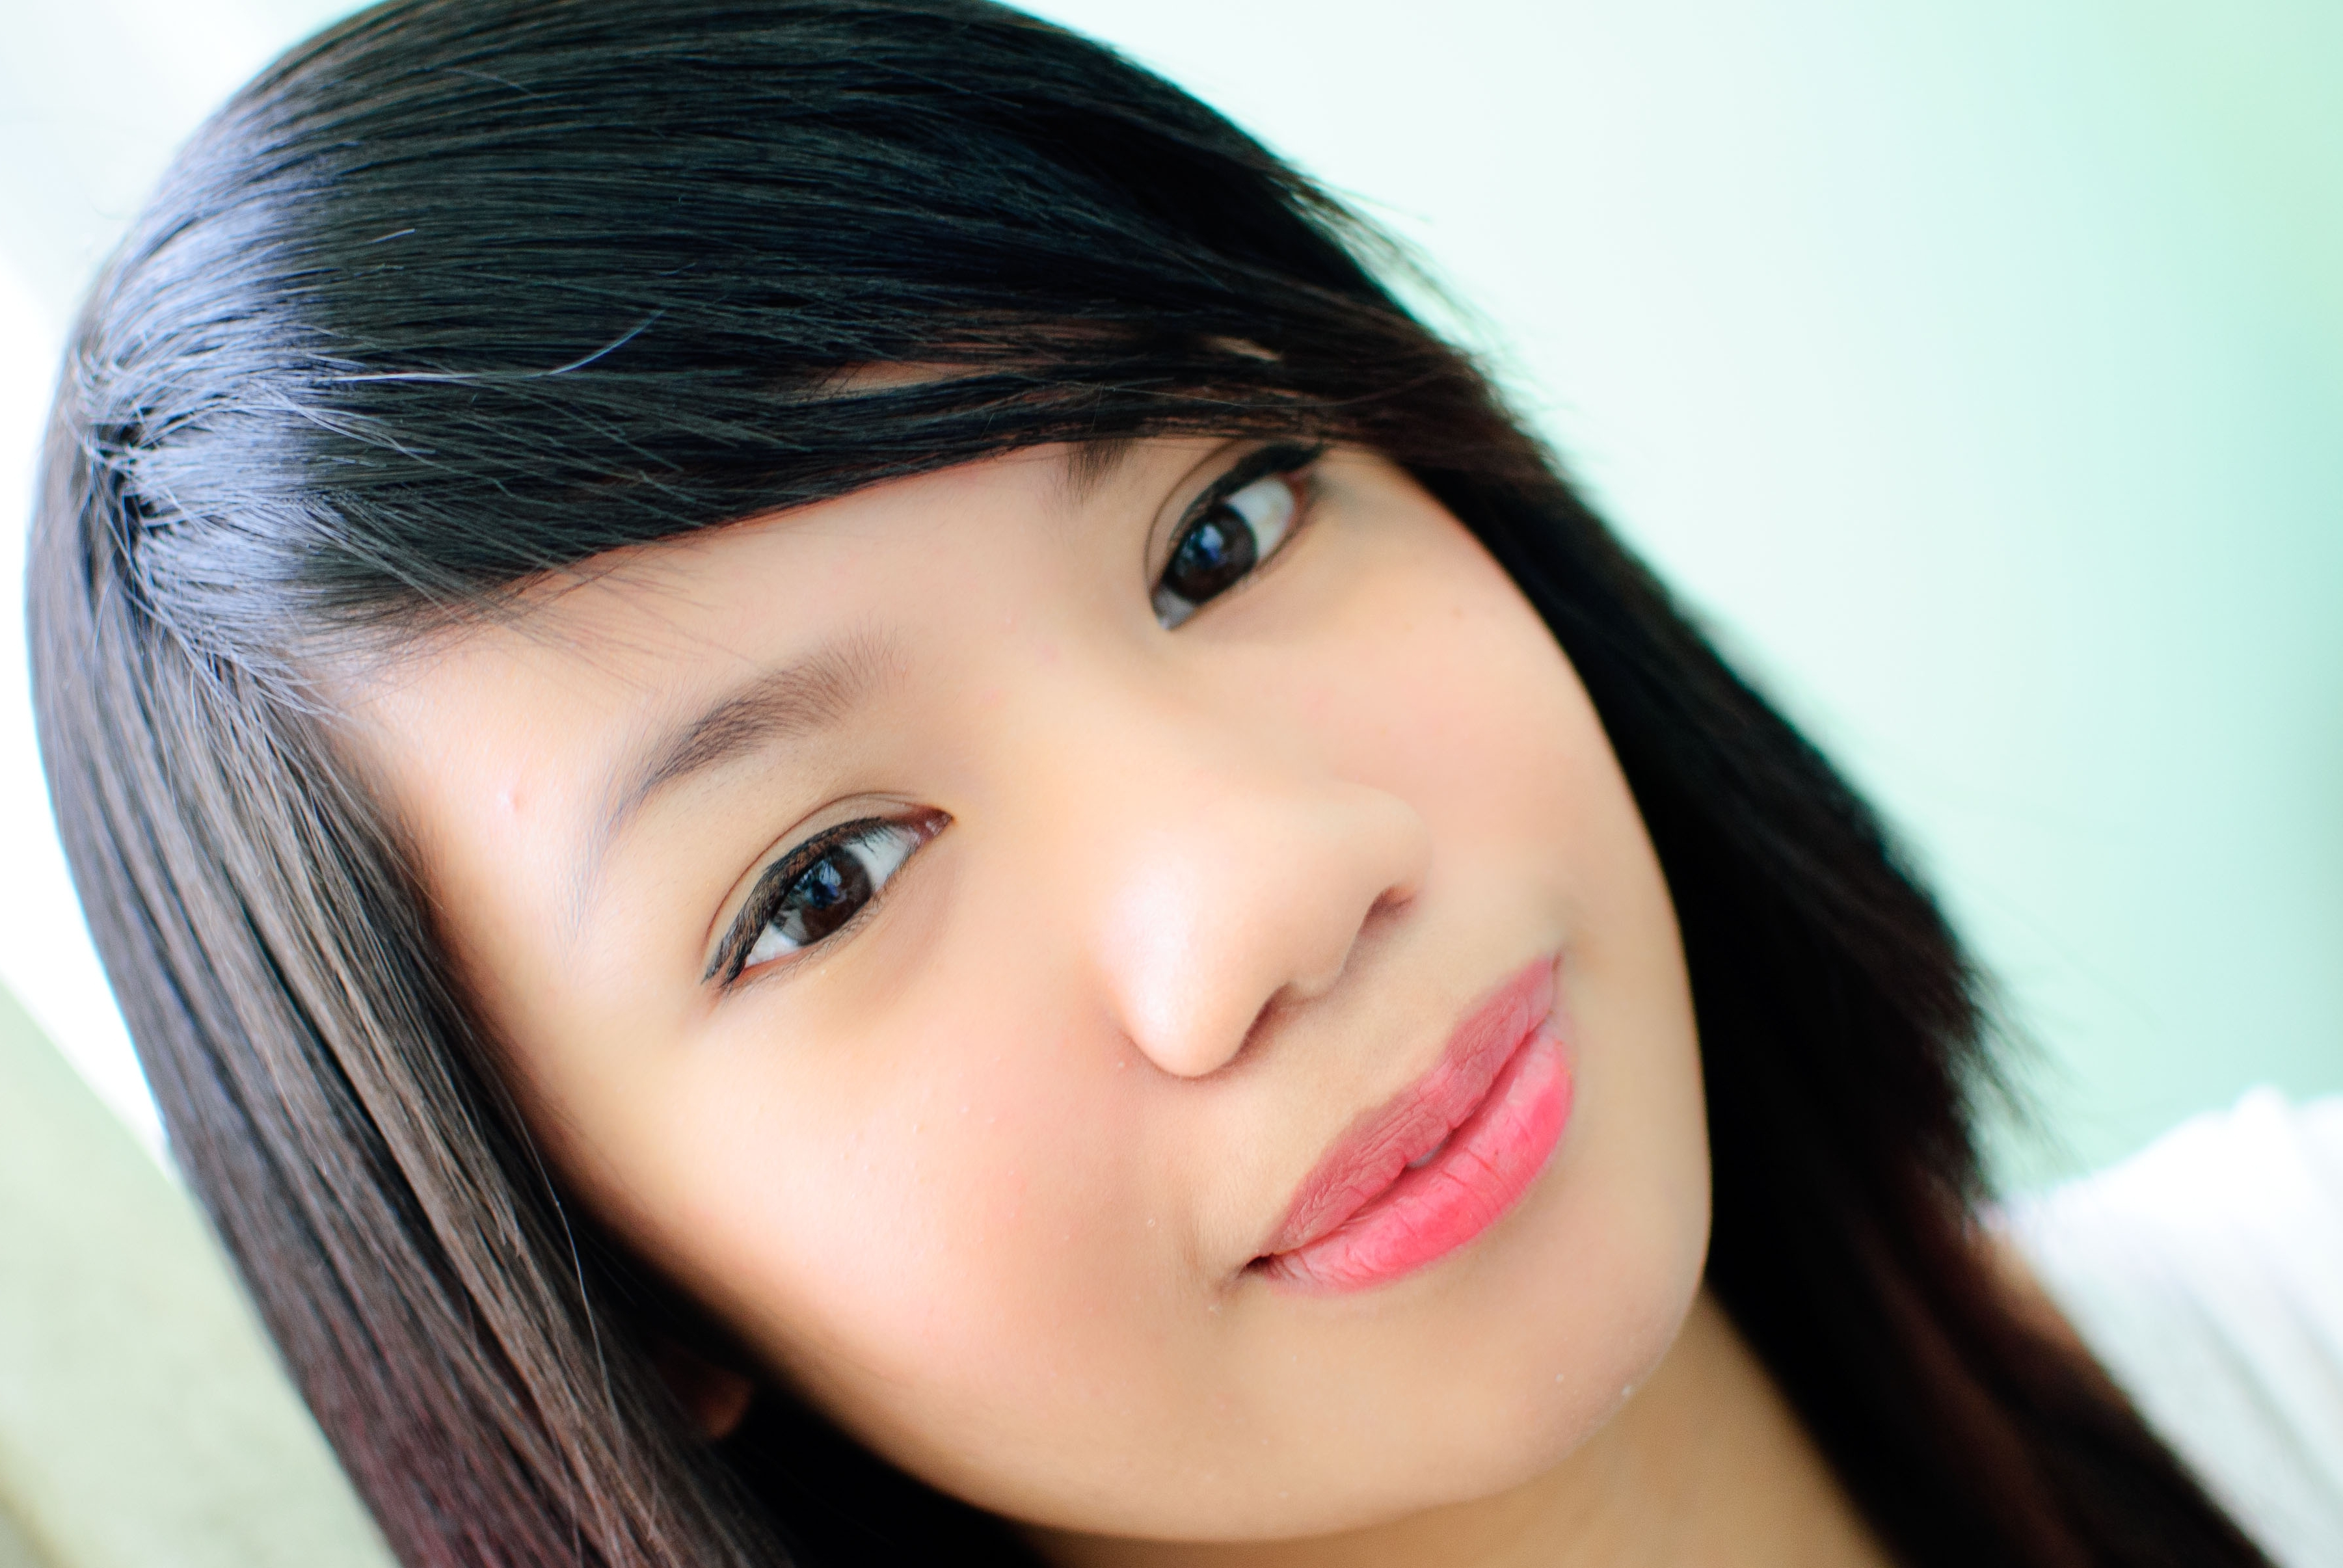 Long Hairstyles With Swoop Bangs How To Get Sideswept Bangs With Regarding Fashionable Side Pony Hairstyles With Swooping Bangs (View 9 of 20)